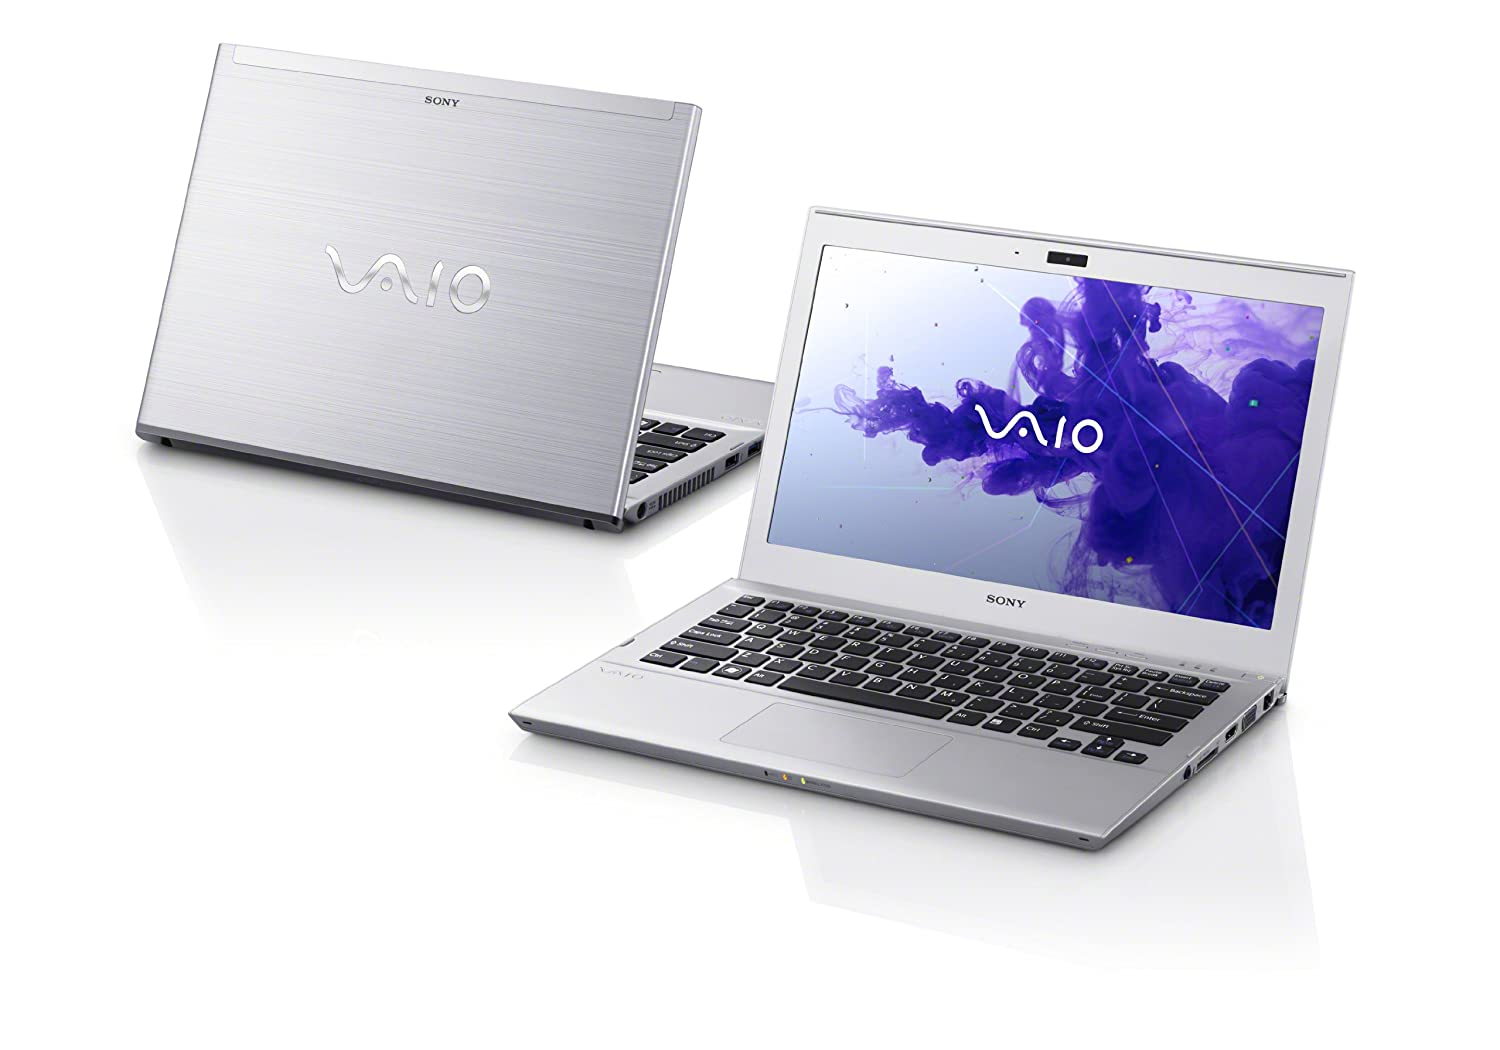 Sony vaio t13 ultrabook review the register - Amazon Com Sony Vaio T Series Svt13125cxs 13 3 Inch Ultrabook Silver Computers Accessories